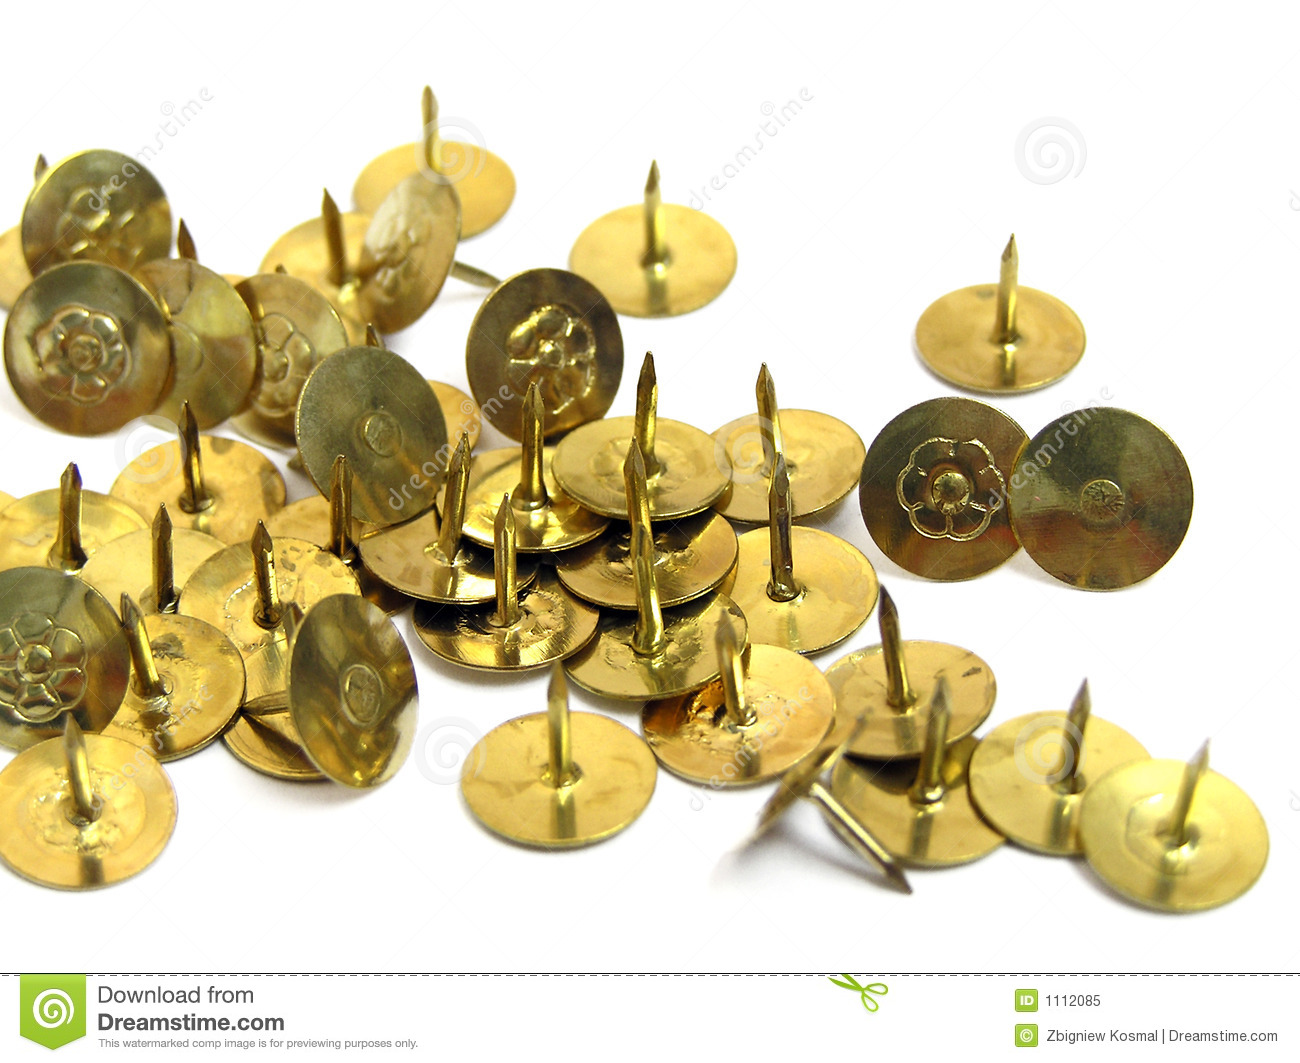 The group of zloties of thumbtacks on white background.